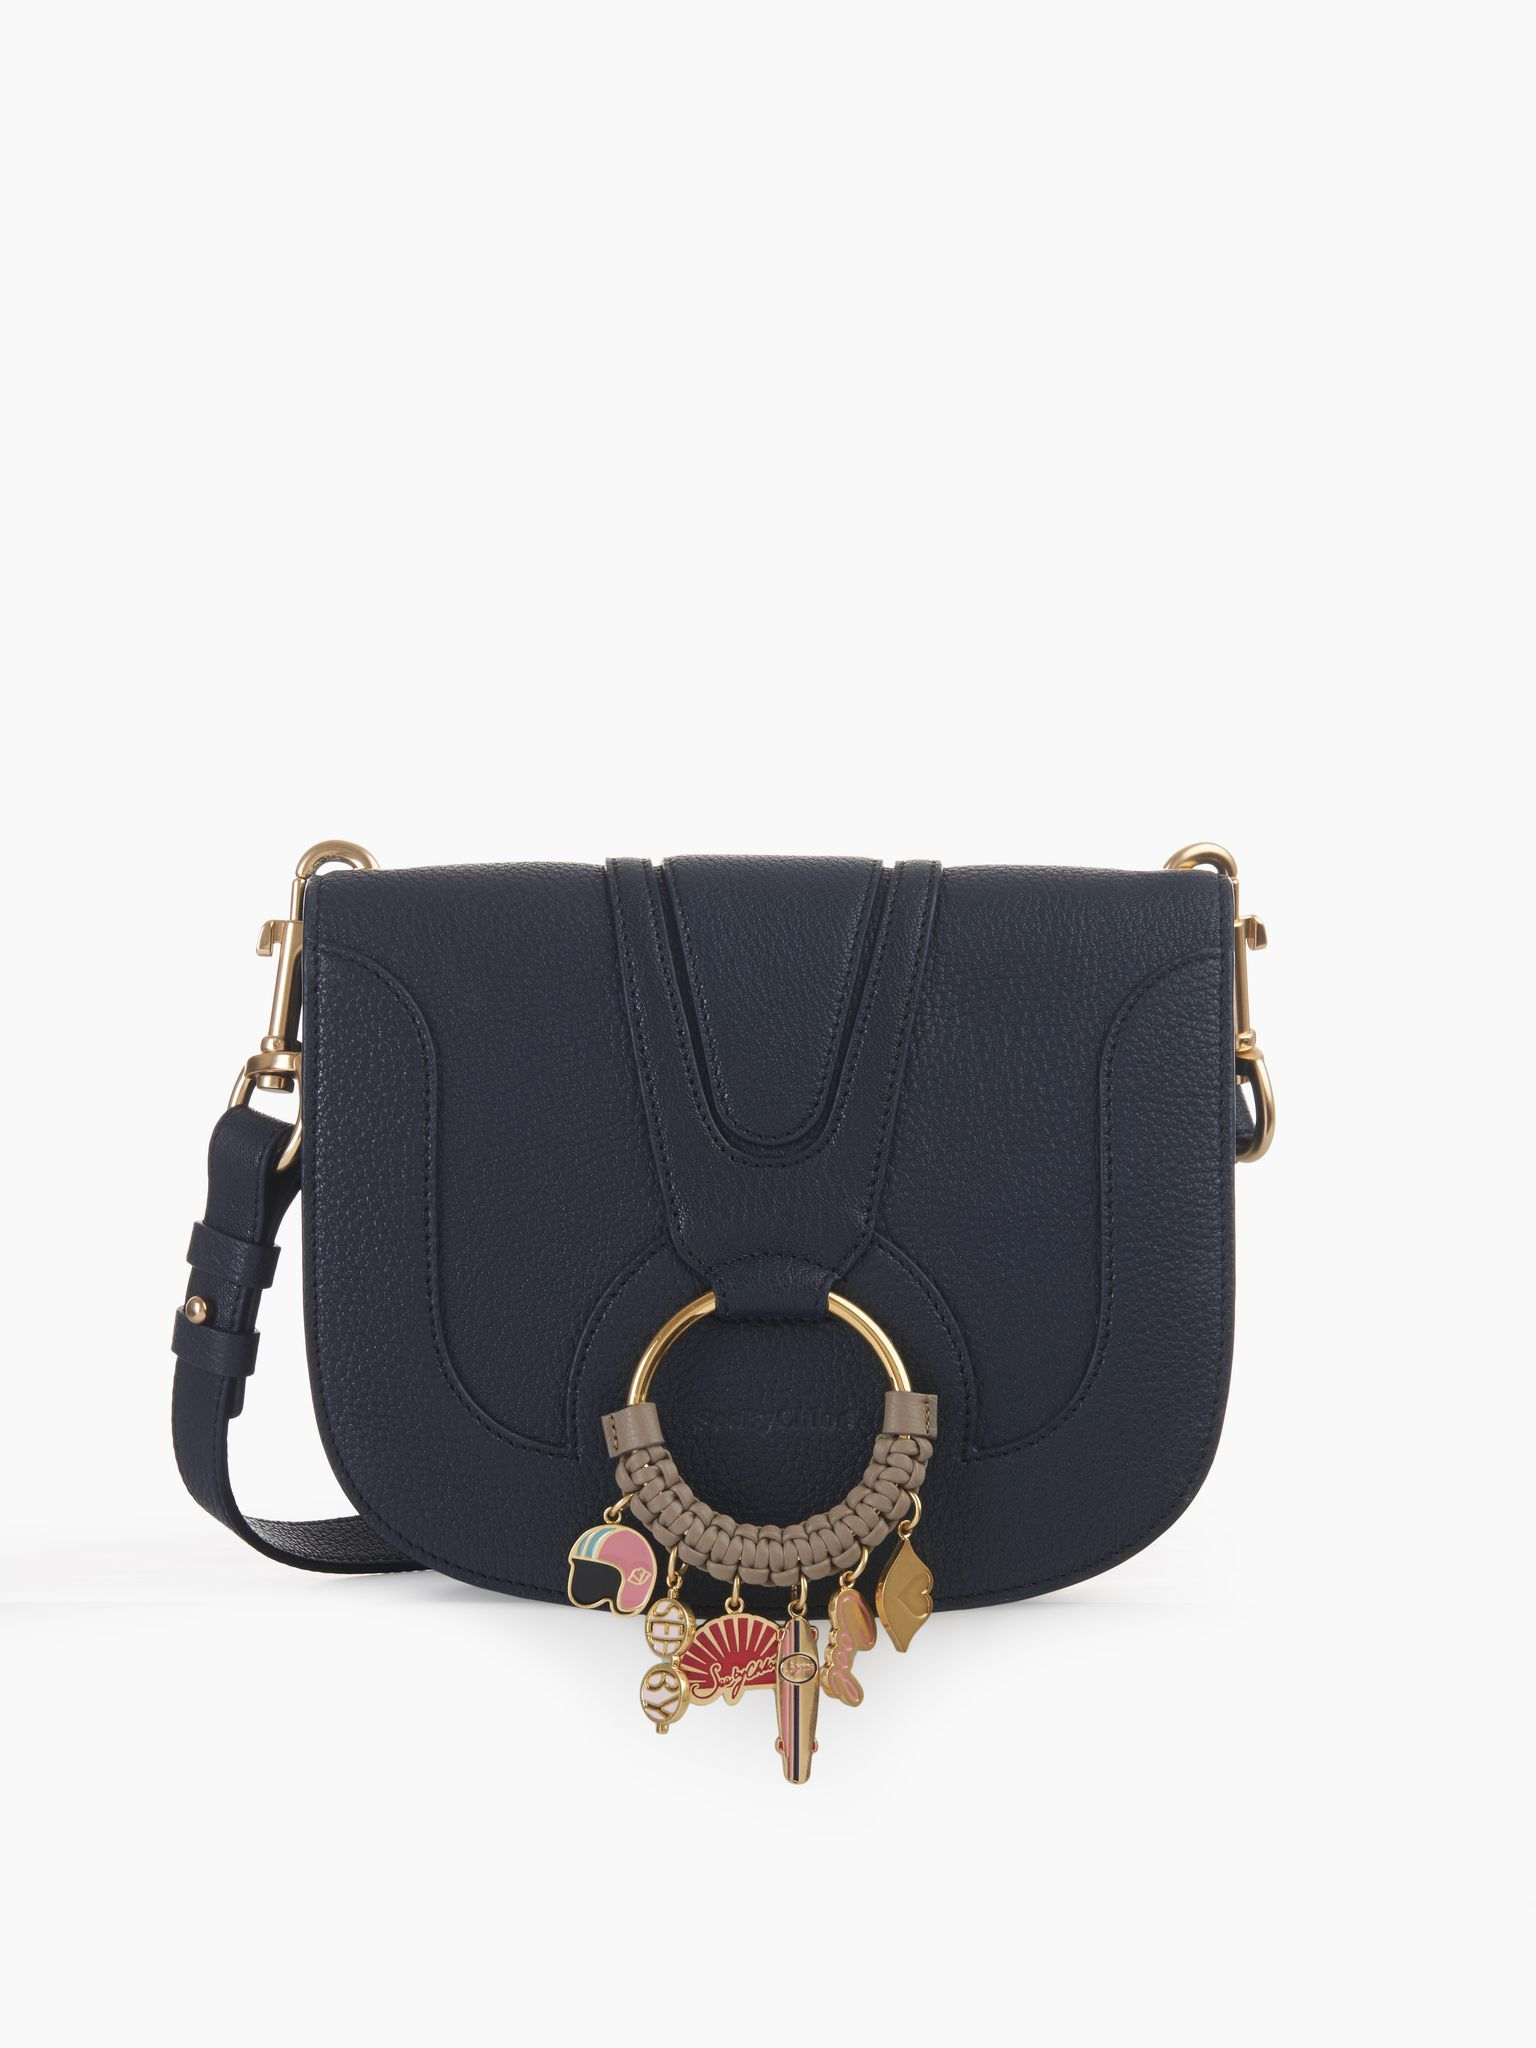 0120328458 Hana Shoulder Bag – Cool , Women 's Bags | Chloé Official ...